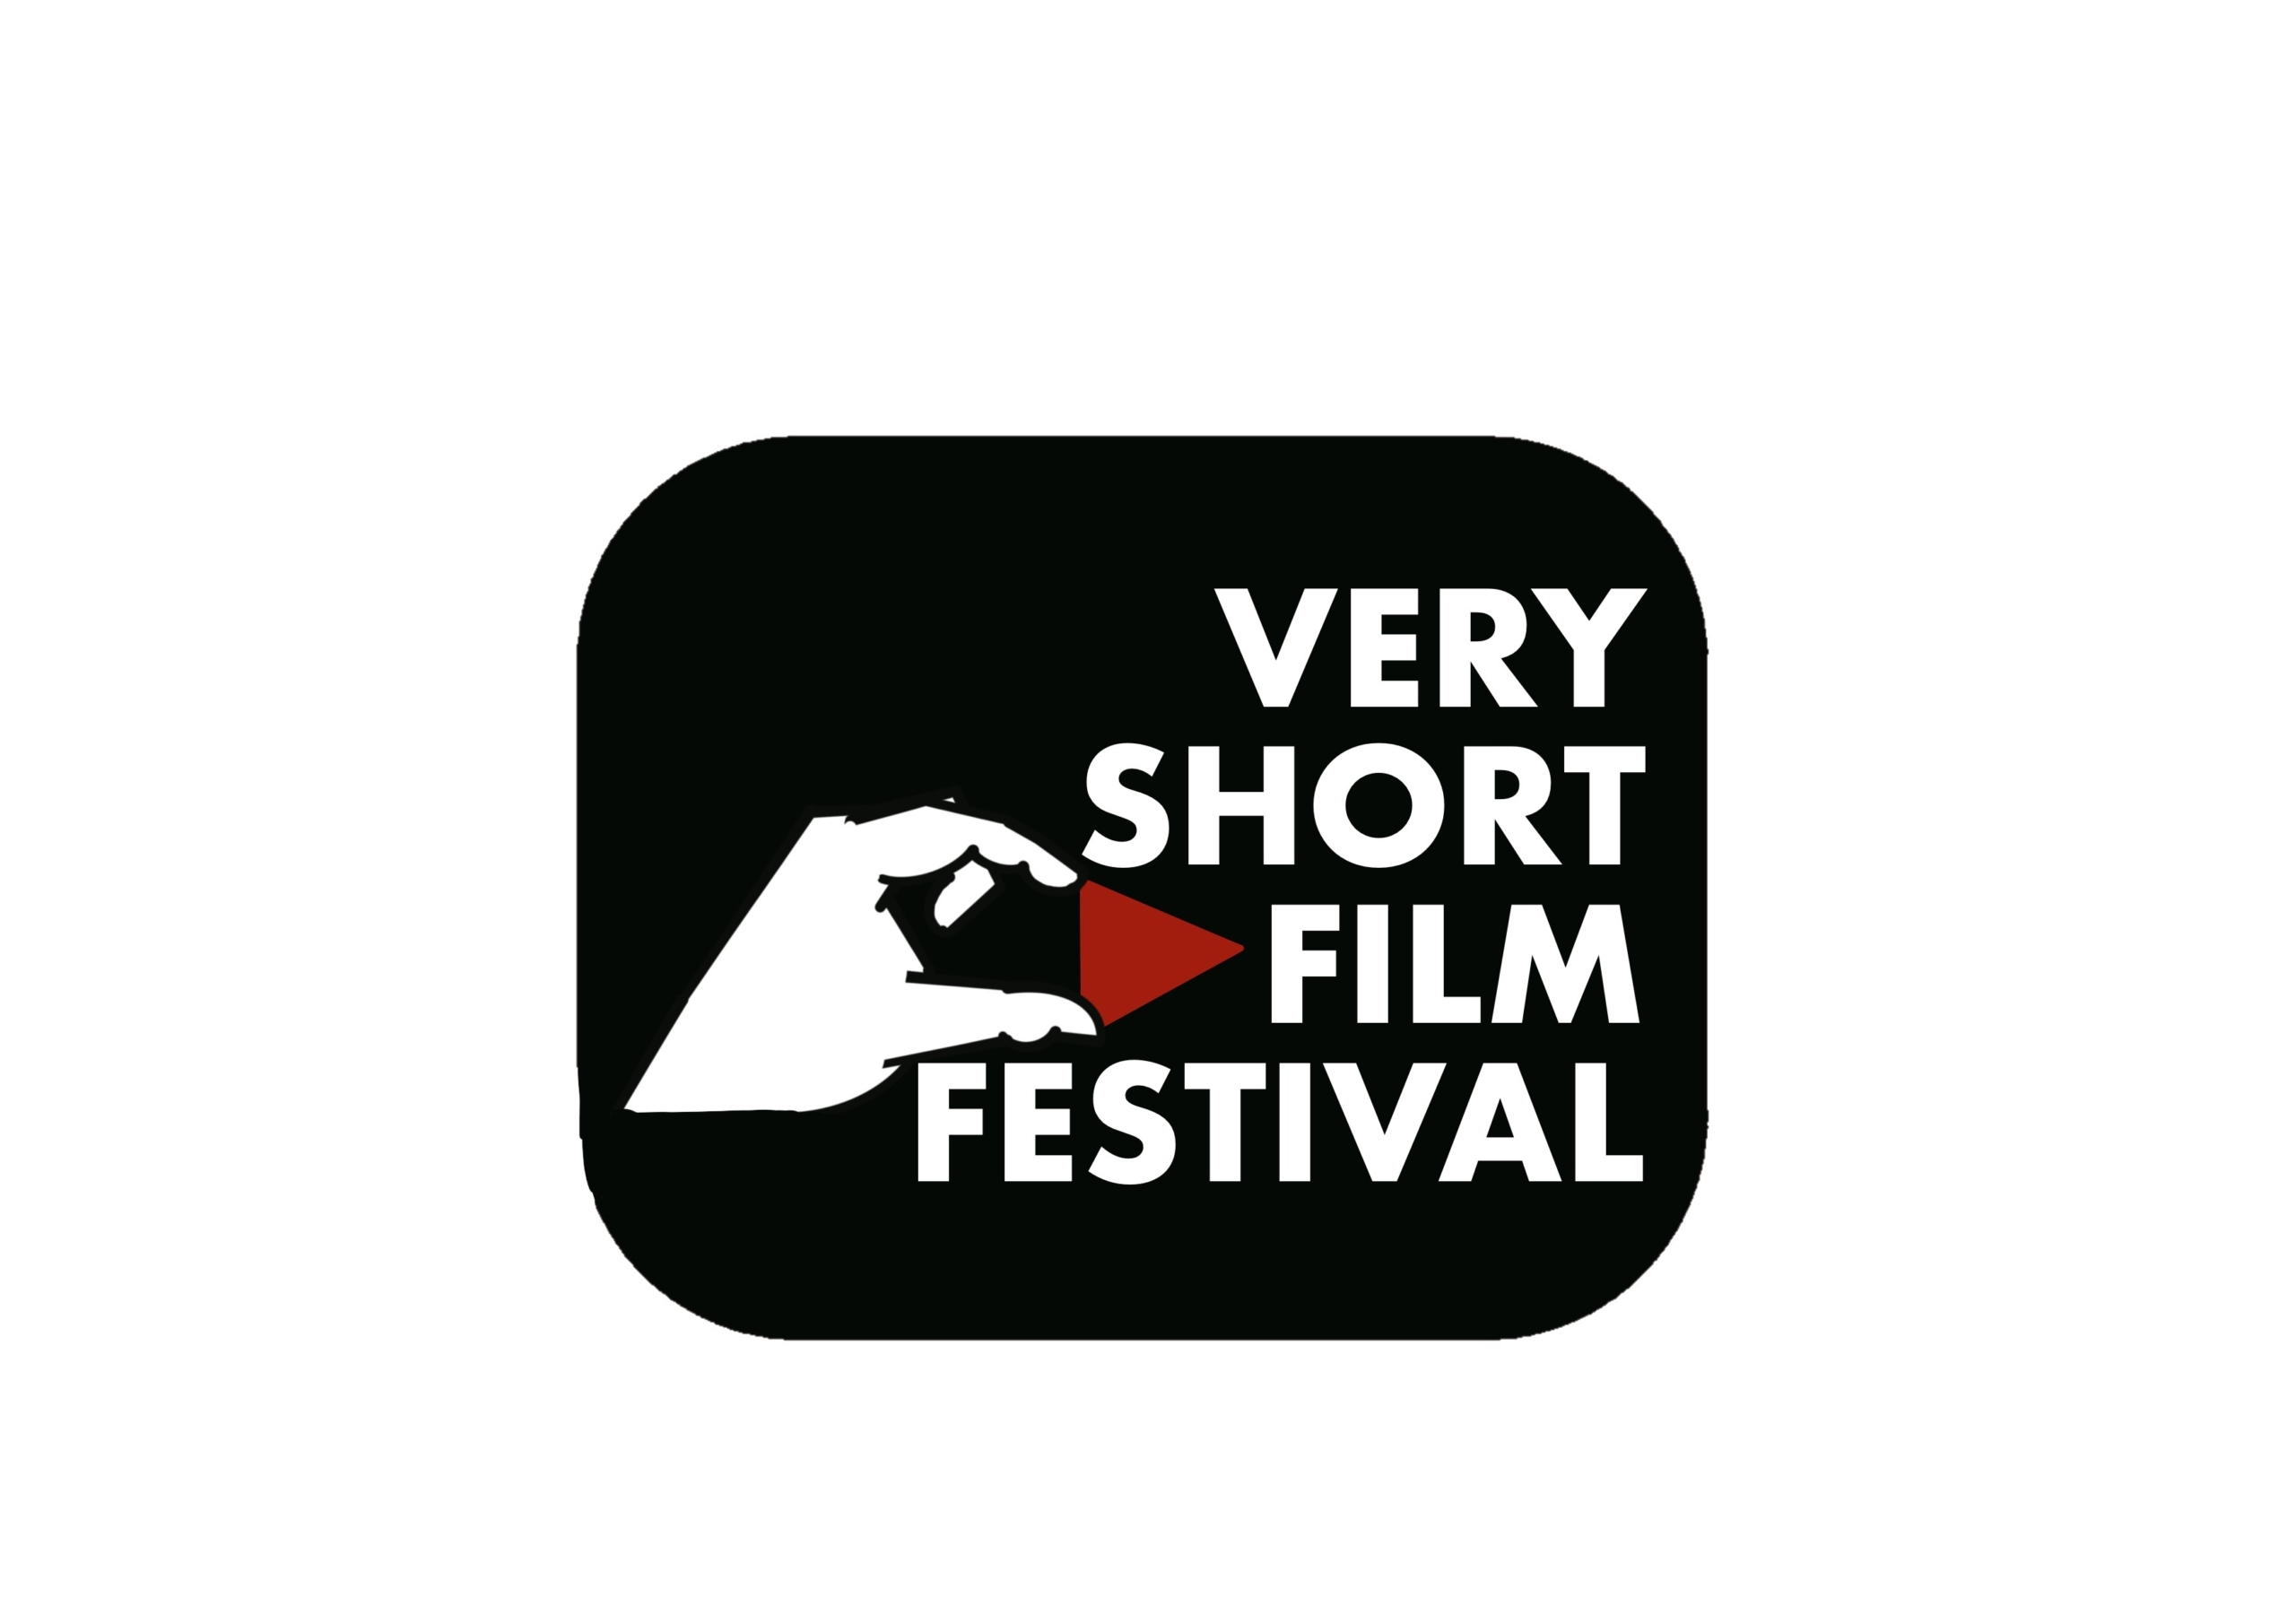 Very Short Film Festival